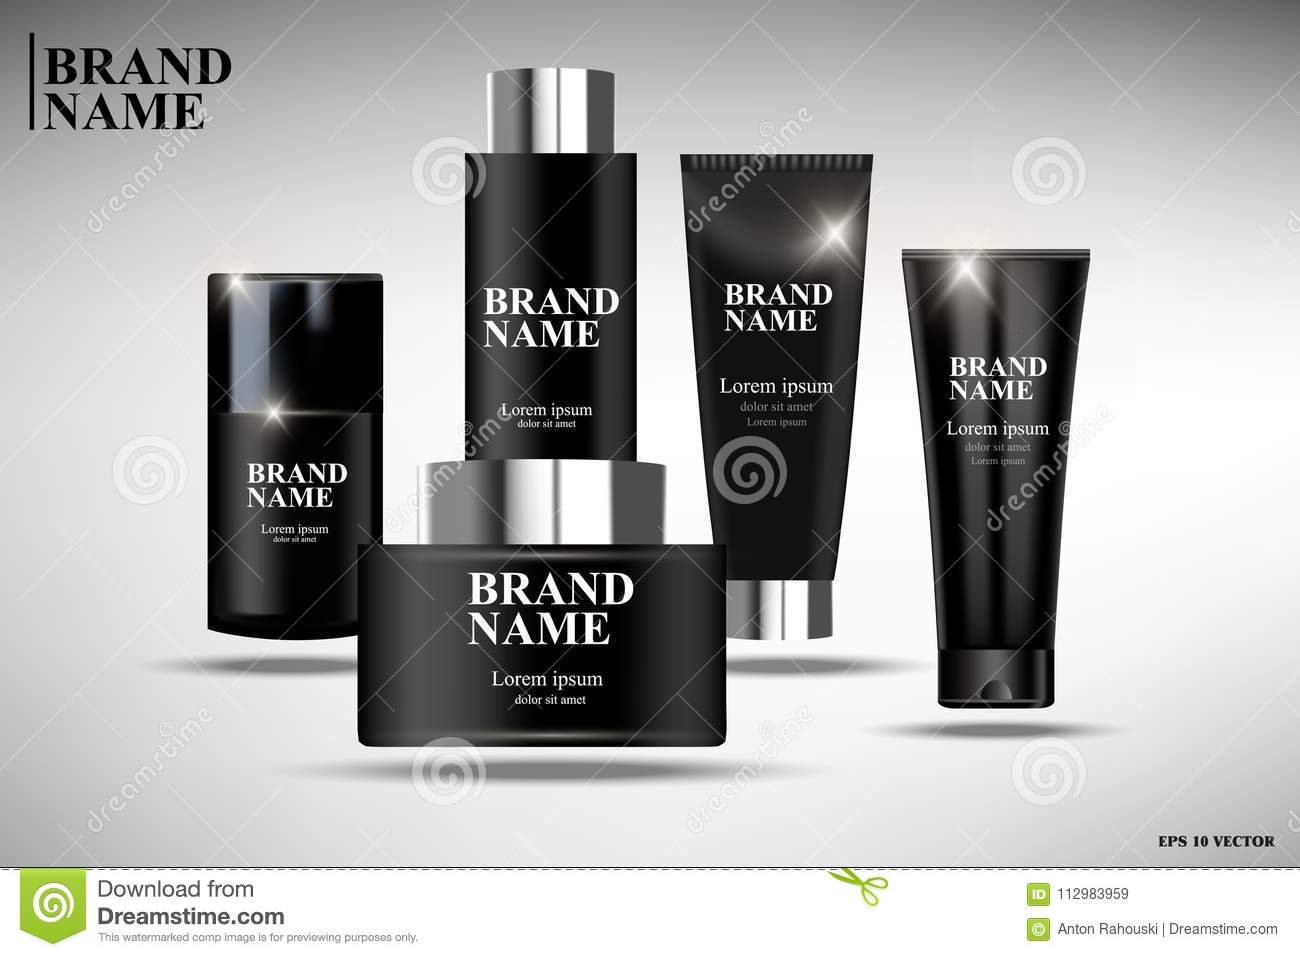 Black realistic cosmetics, black cosmetic packaging design, illustration of cosmetics for promoting premium products